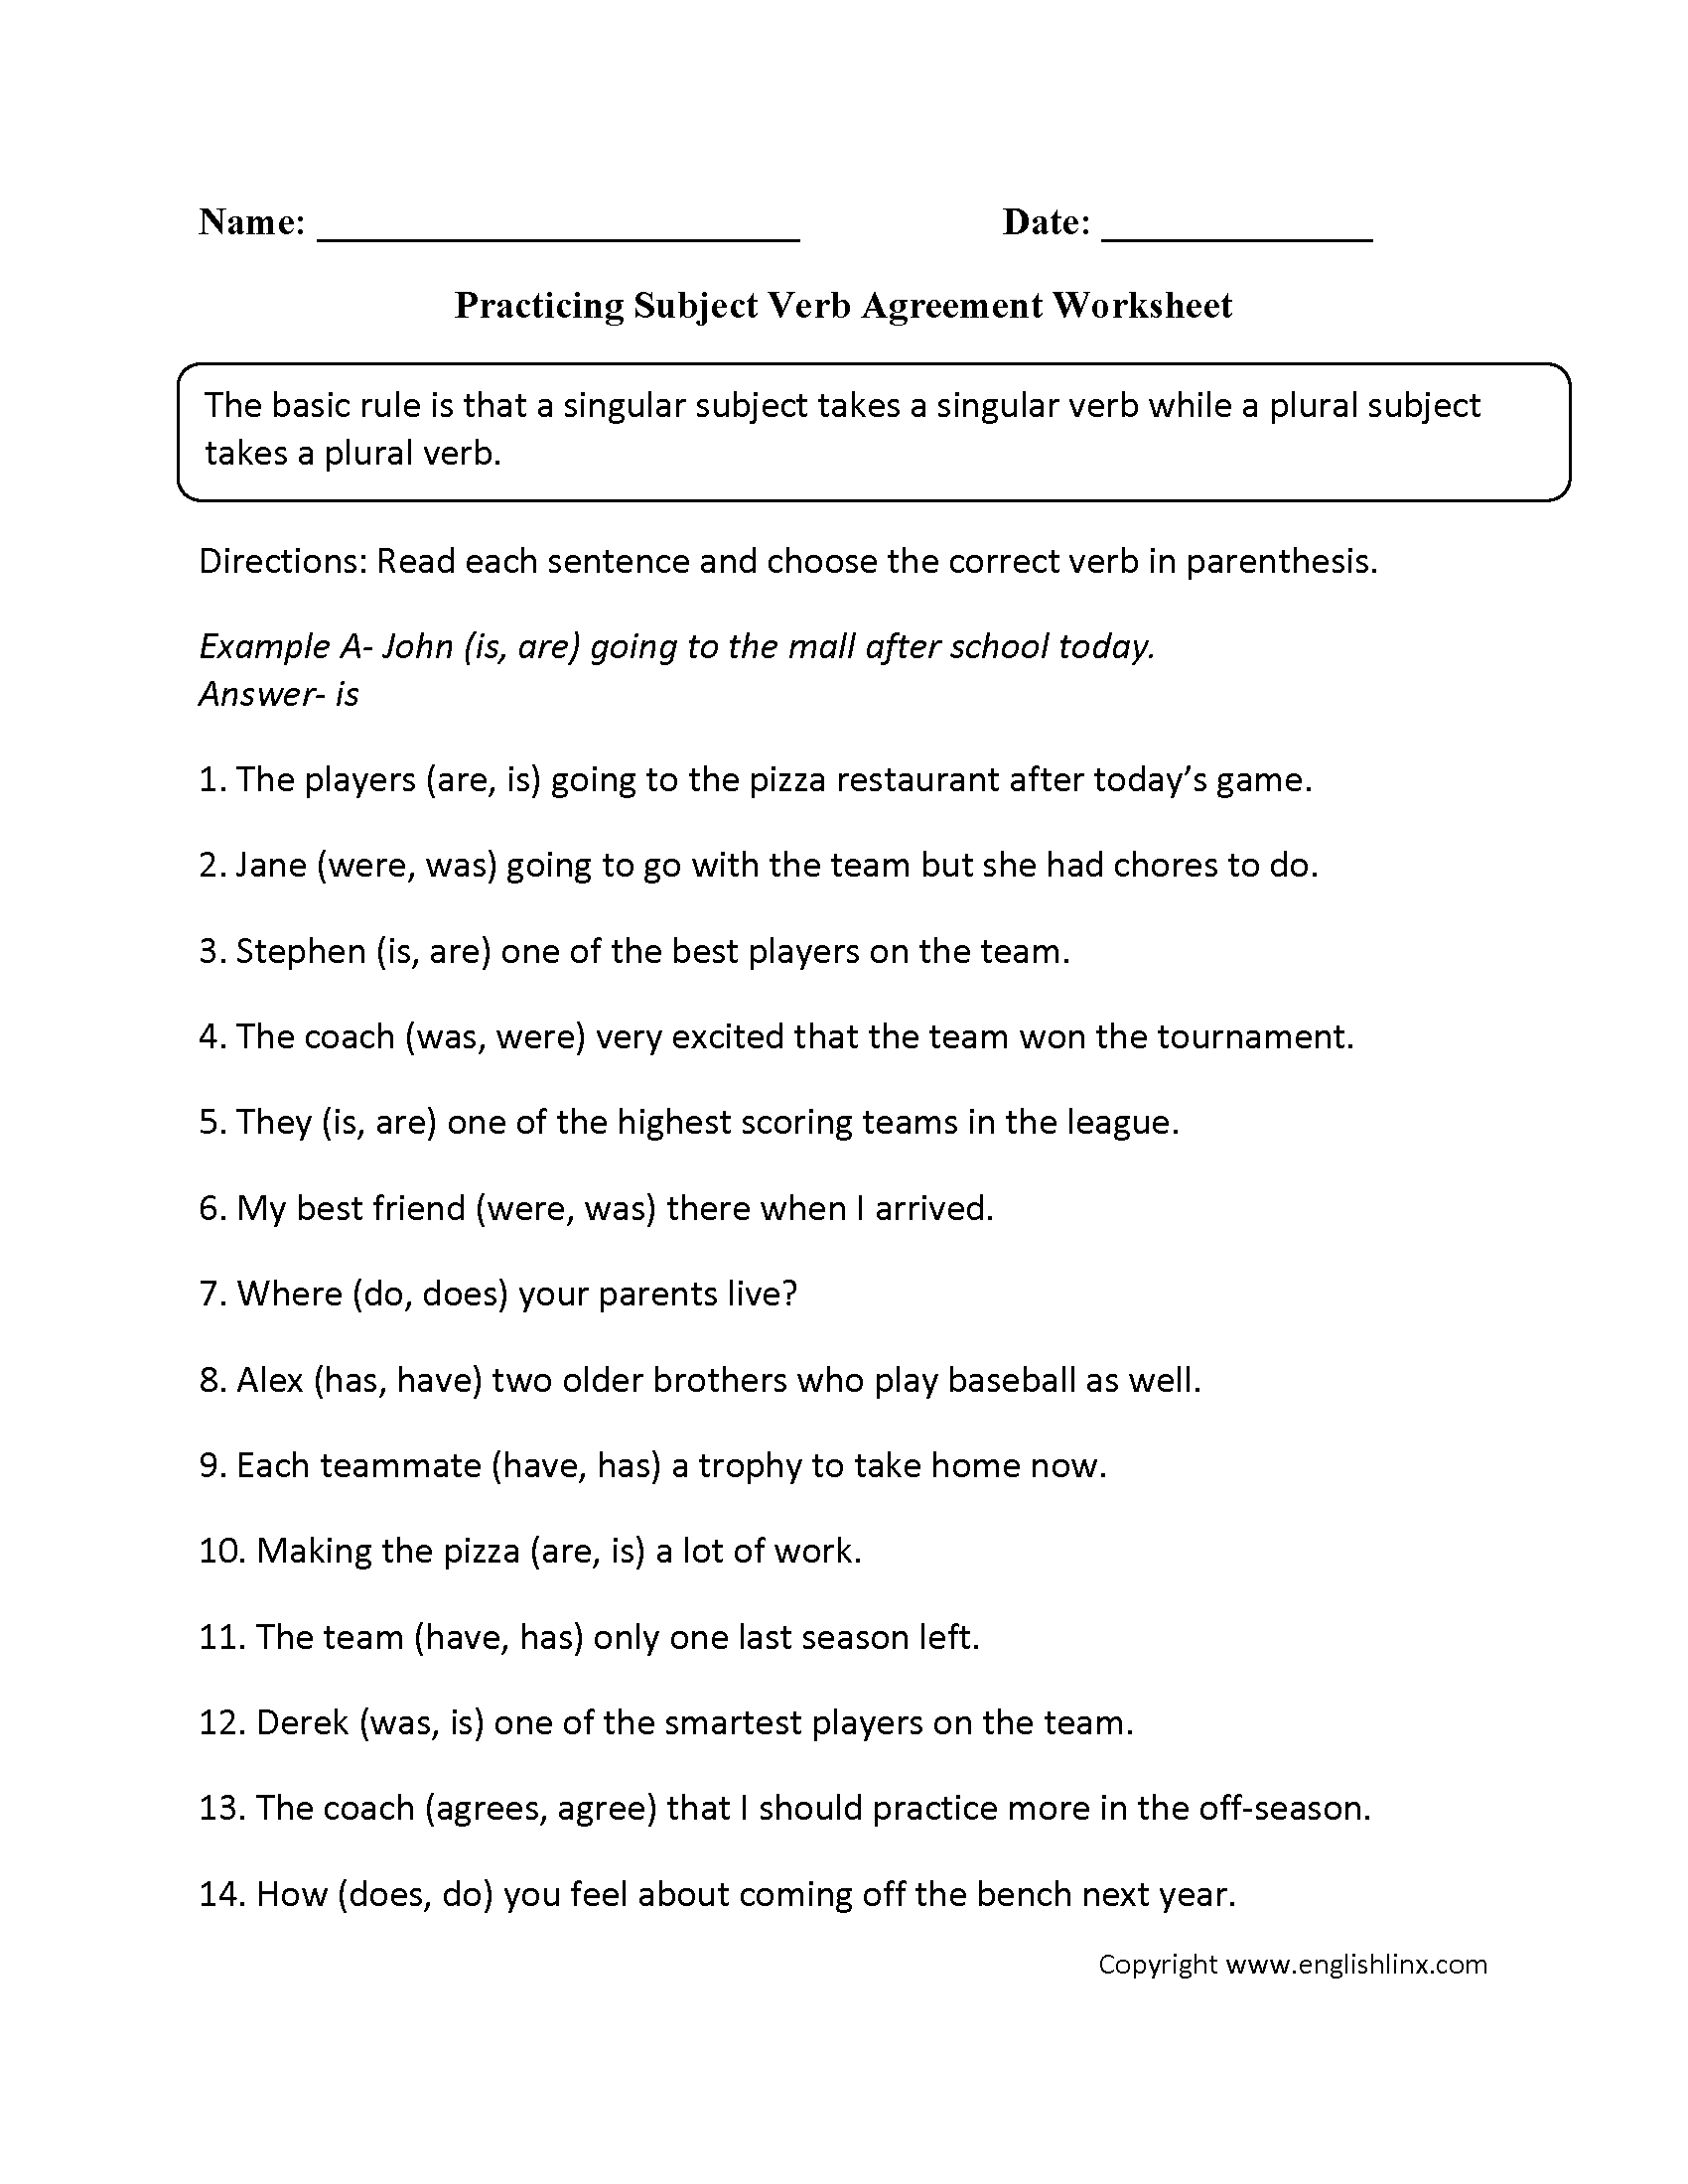 Practicing Subject Verb Agreement Worksheet